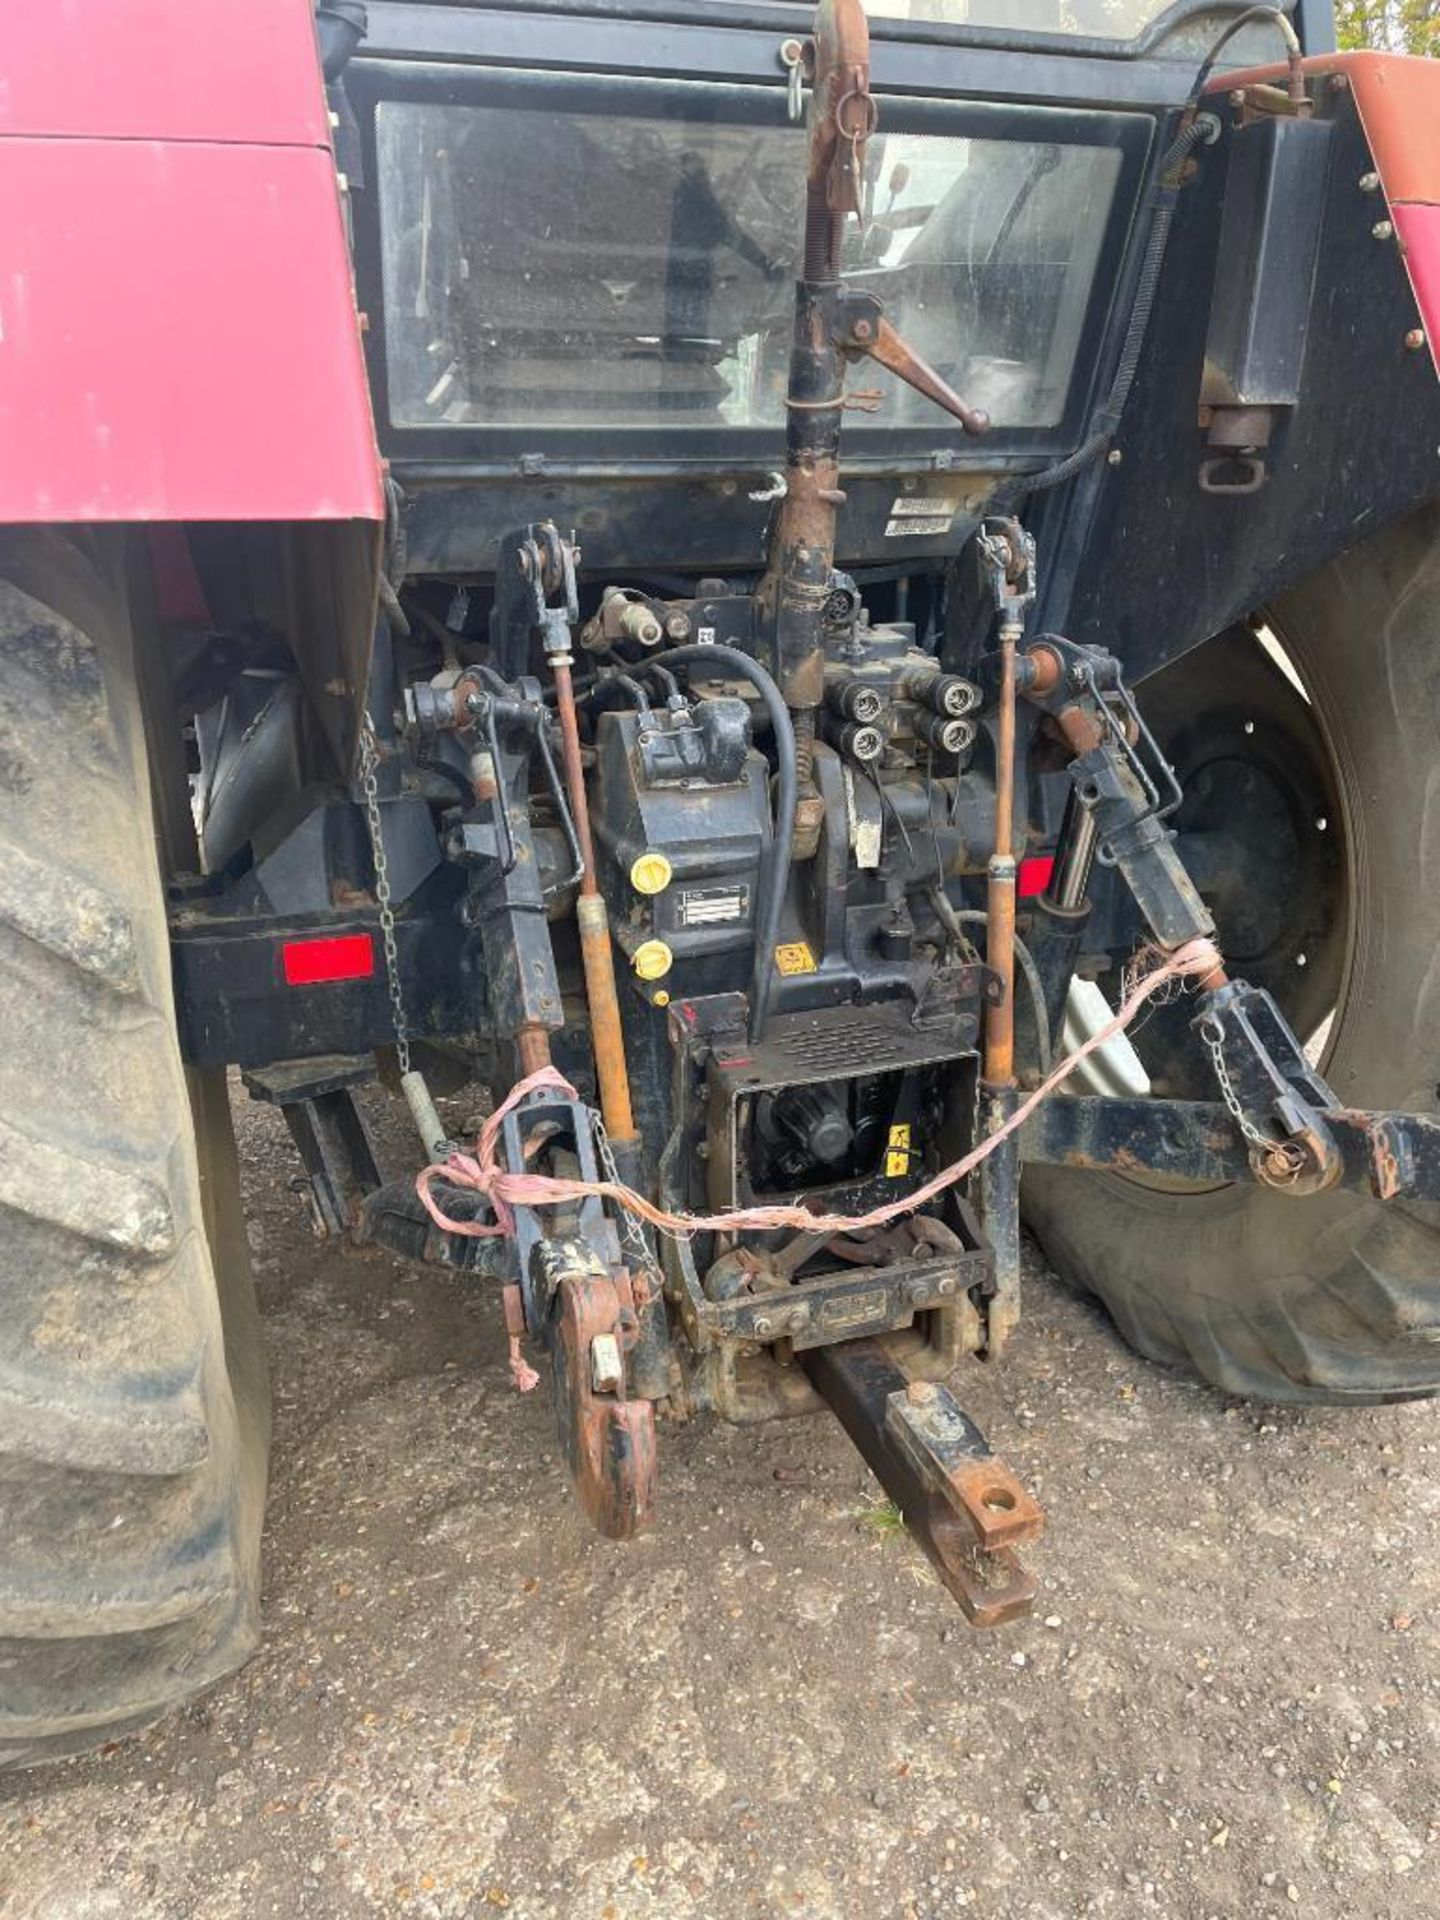 1997 Case IH 5150 Maxxum Plus Powershift 4wd tractor with 2 spools, PUH and front wafer weights on 1 - Image 12 of 13